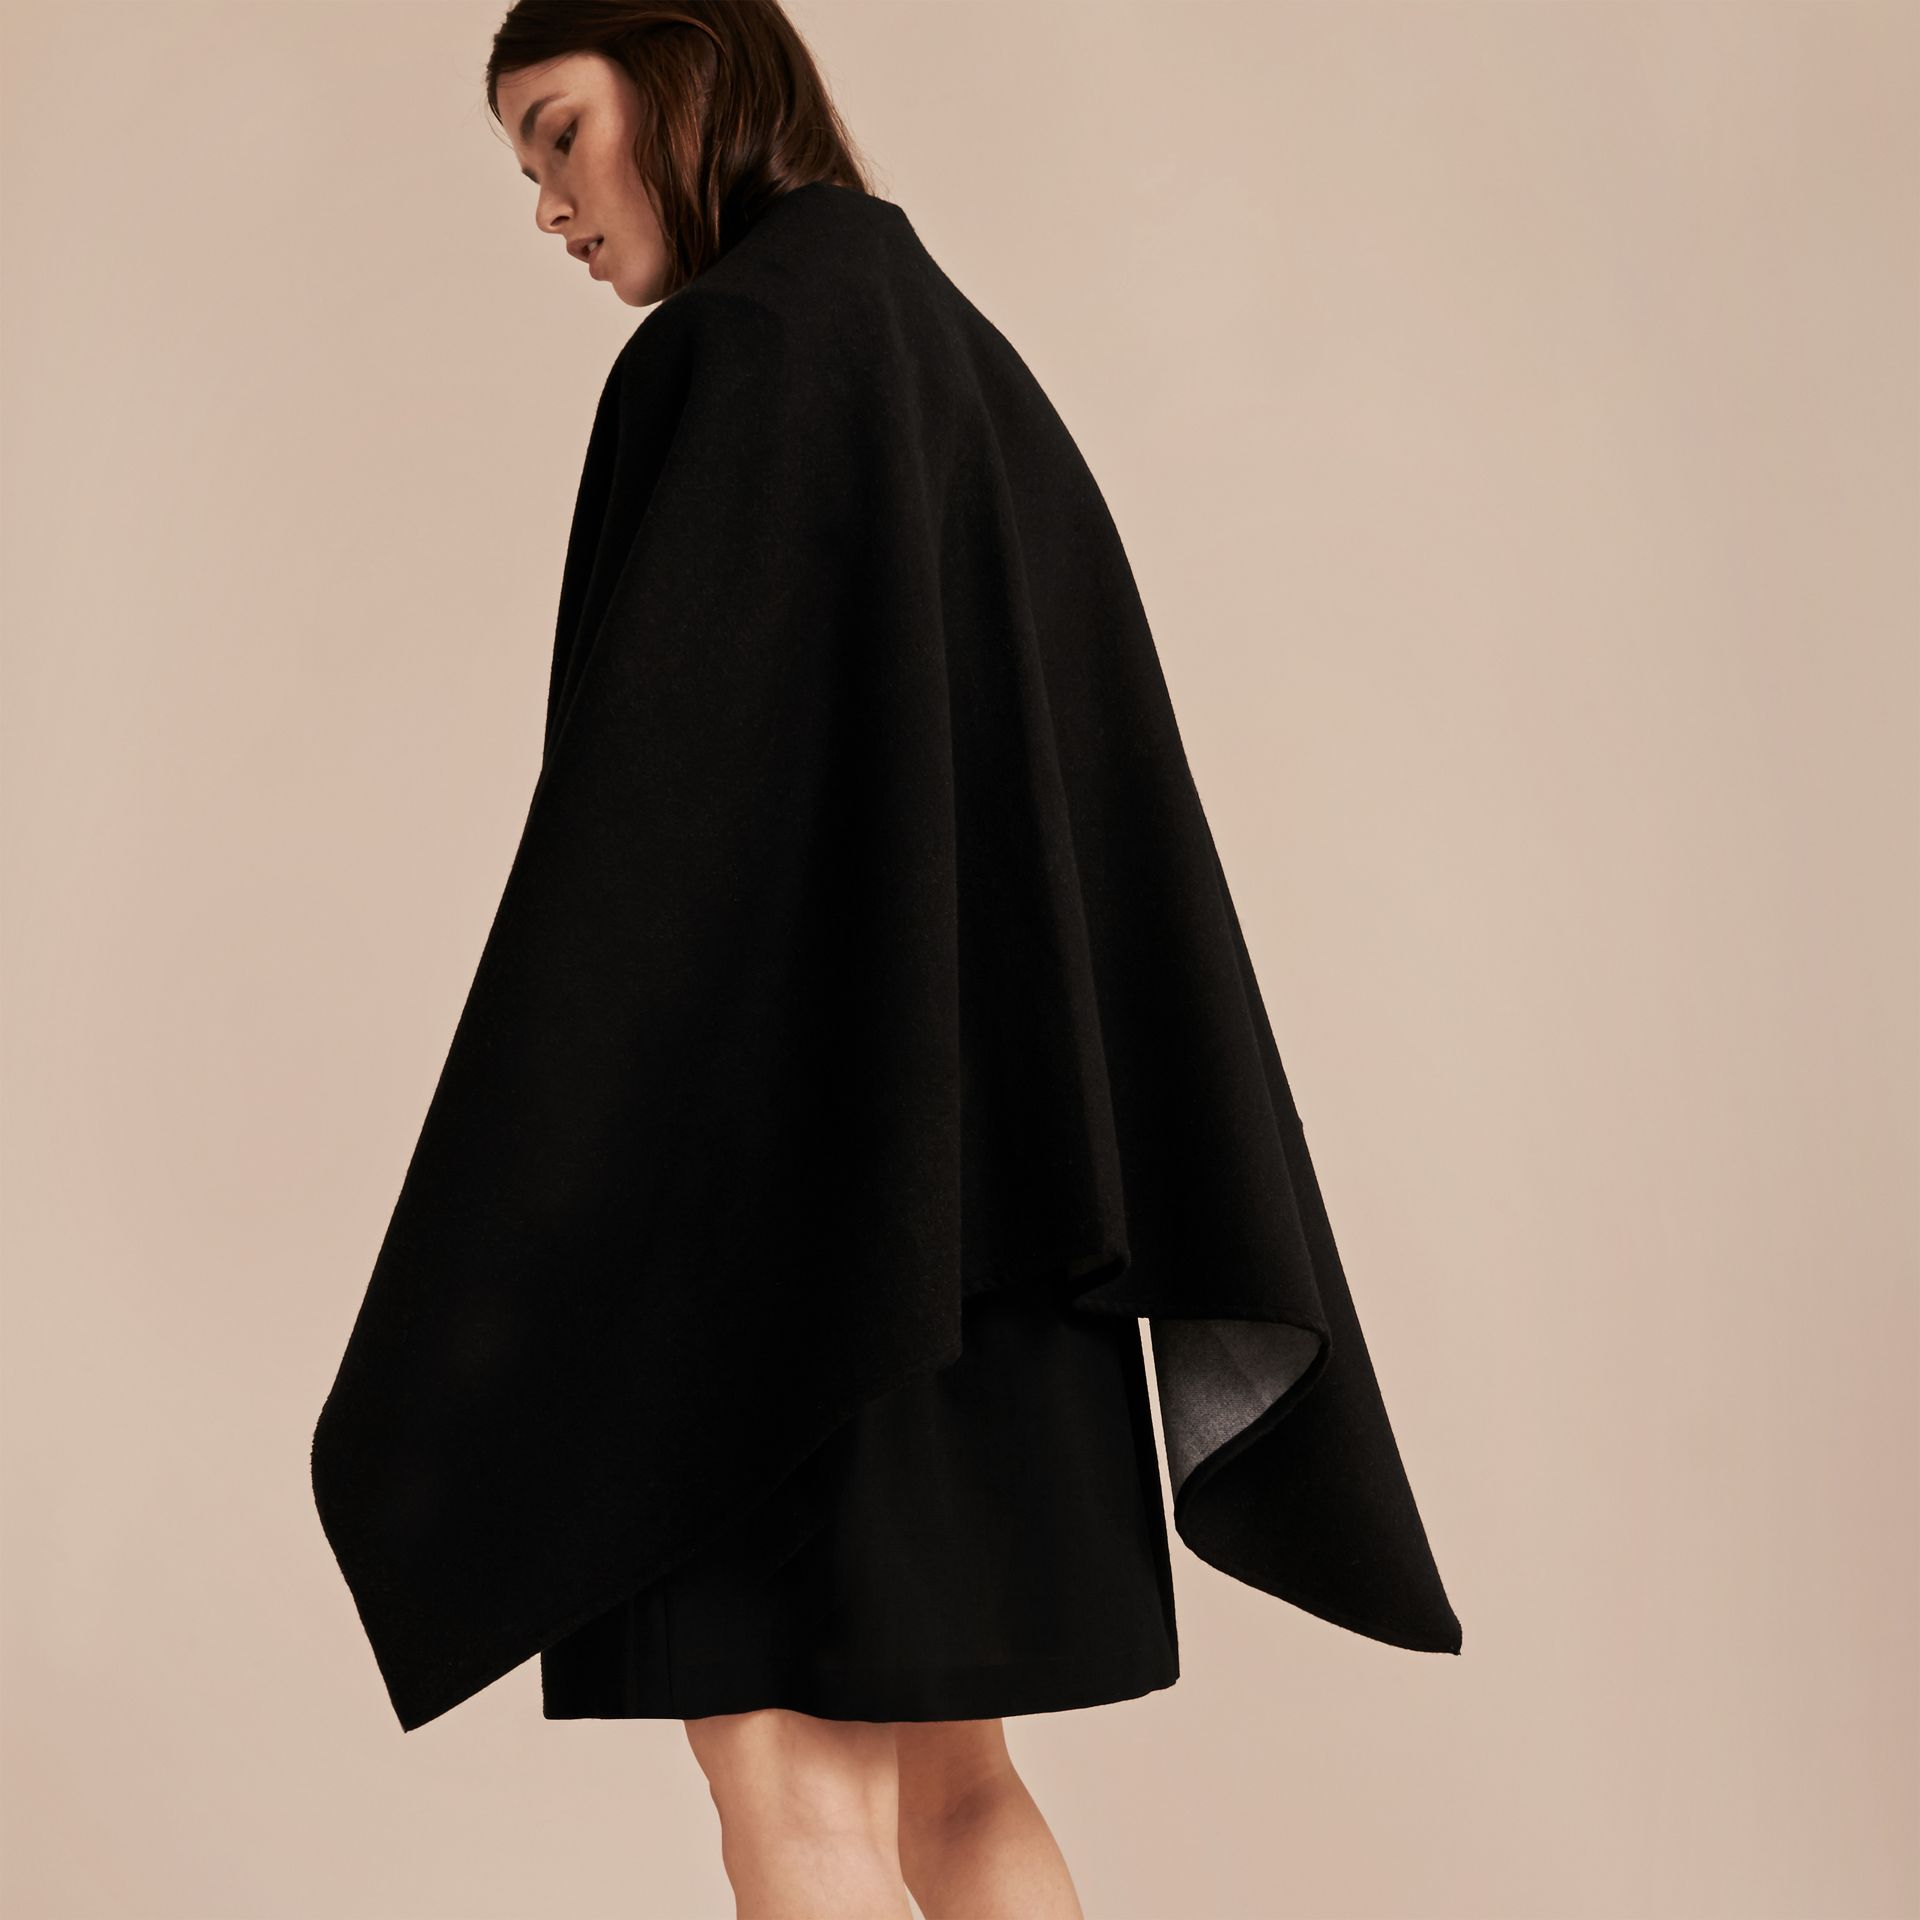 Check-Lined Wool Poncho in Charcoal - Women | Burberry Hong Kong - gallery image 5